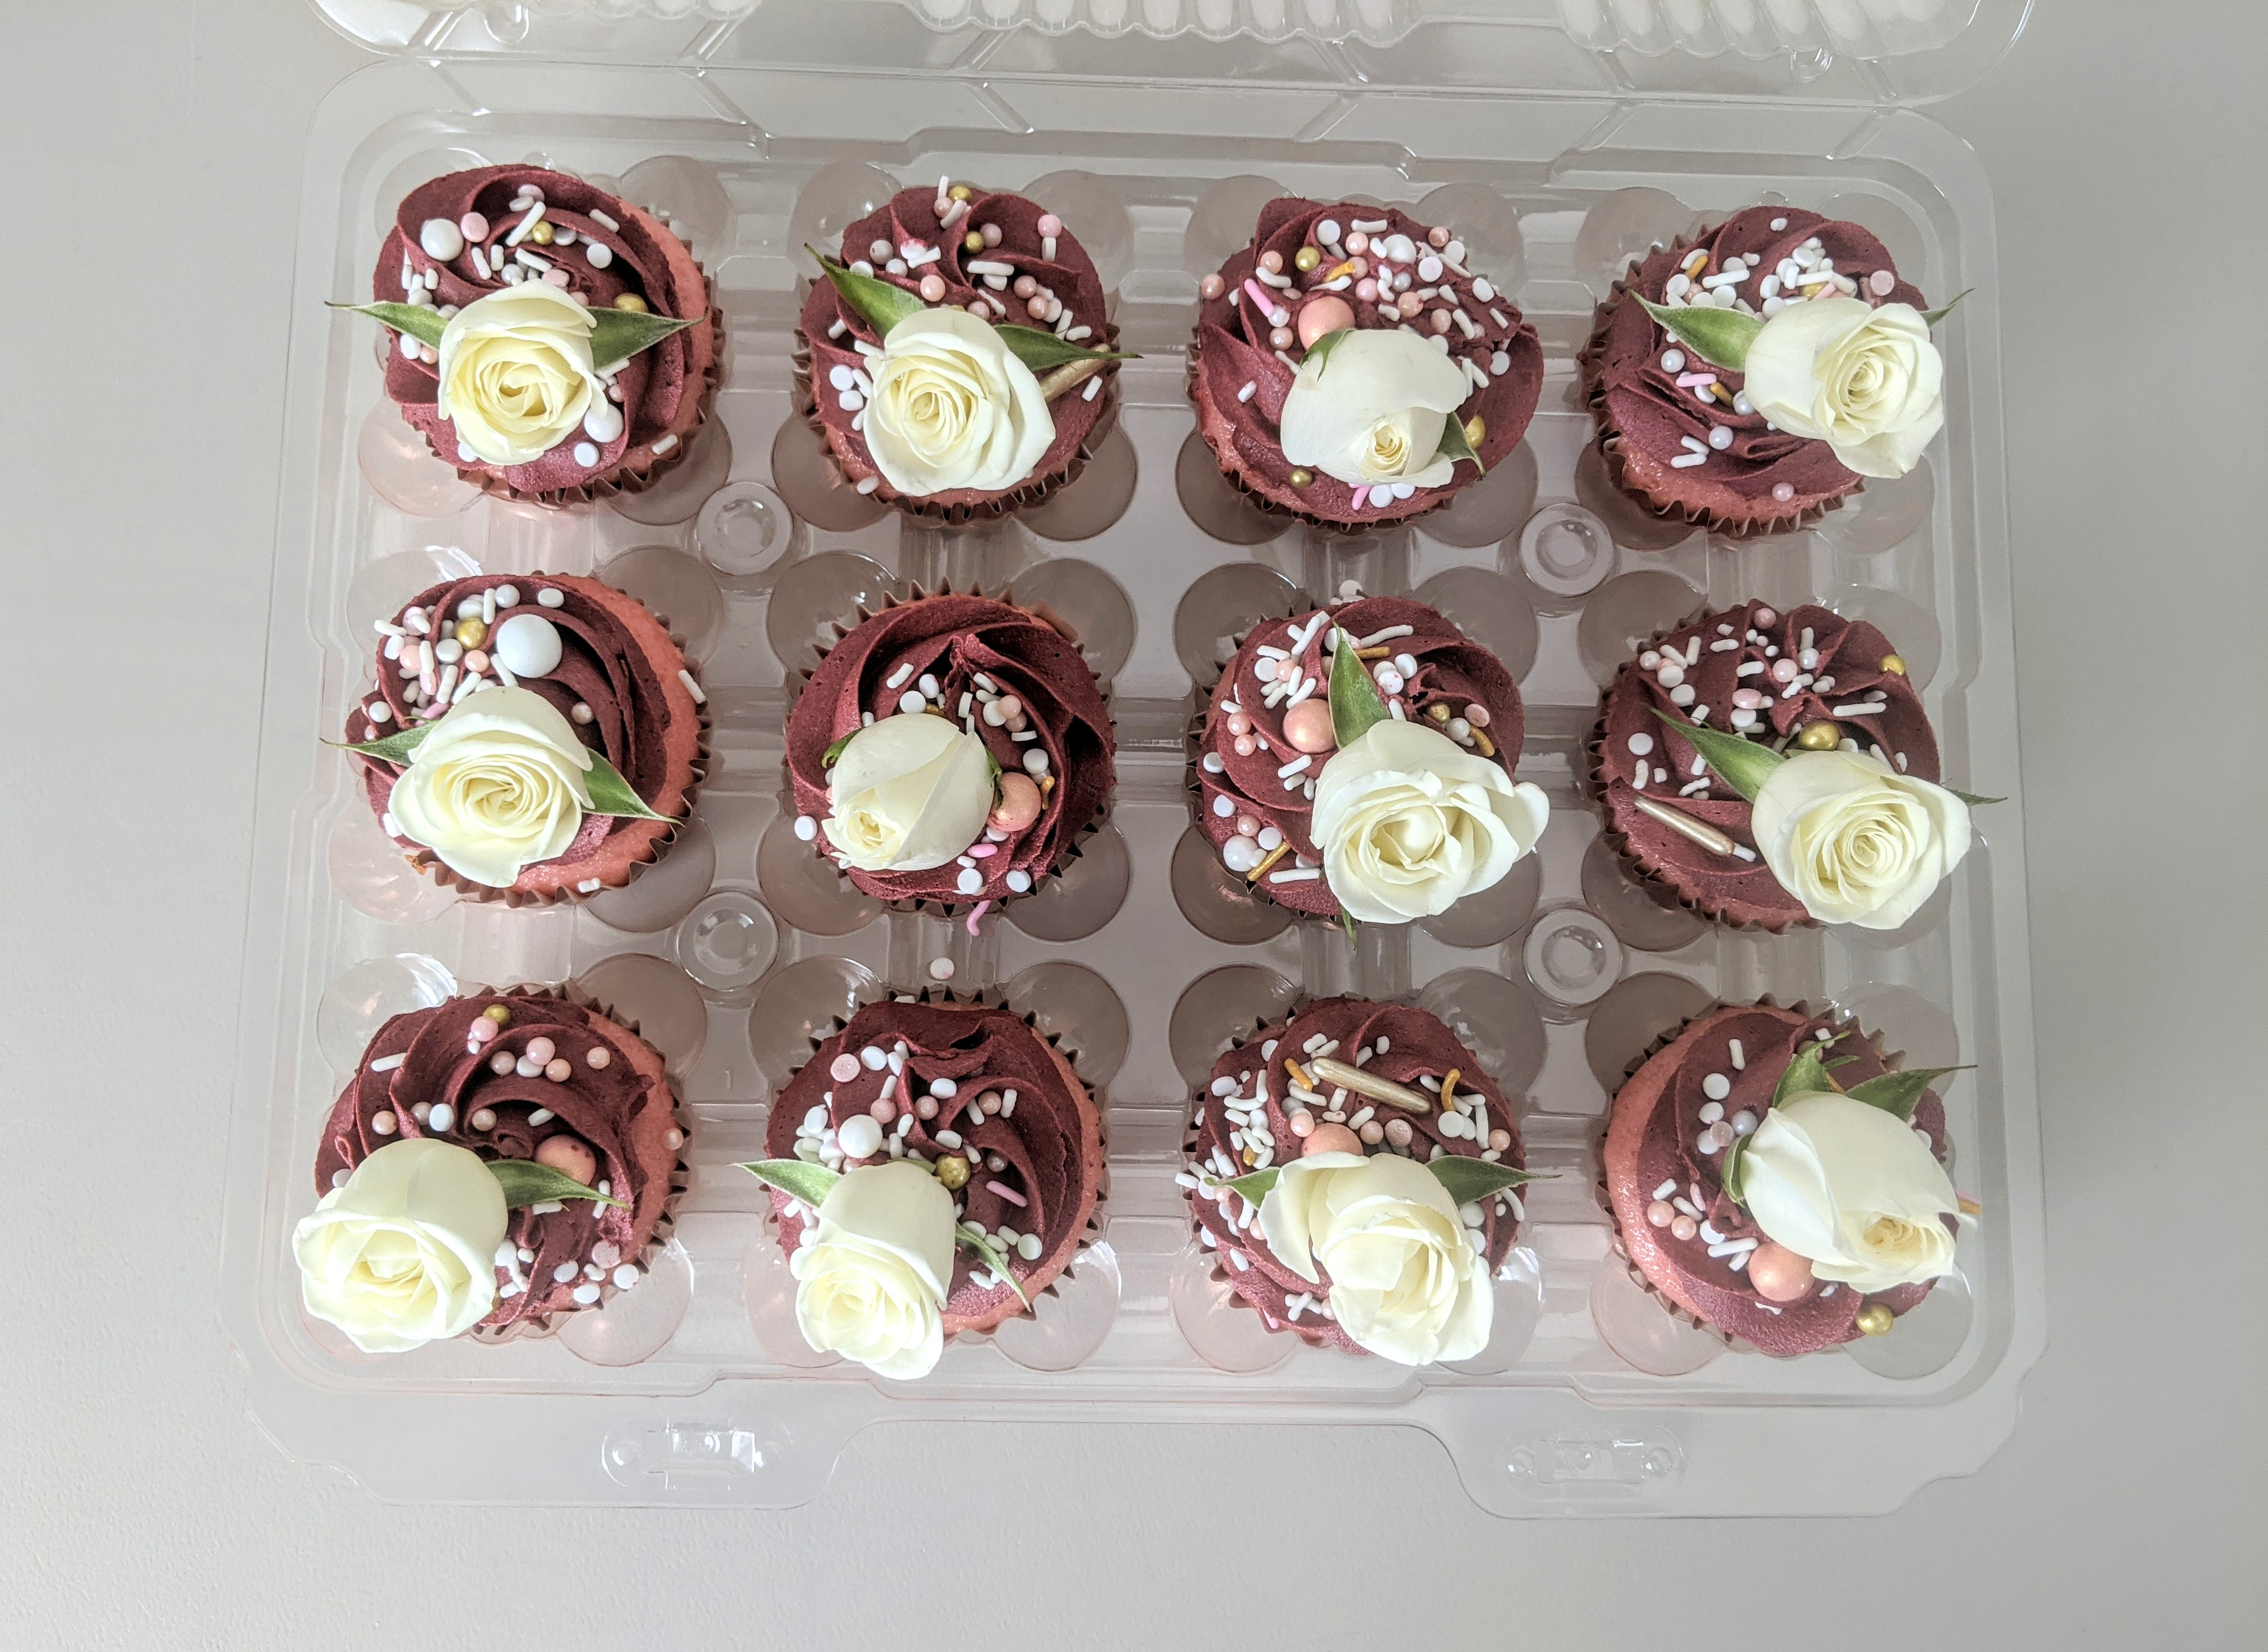 Traditional Cupcakes with Roses